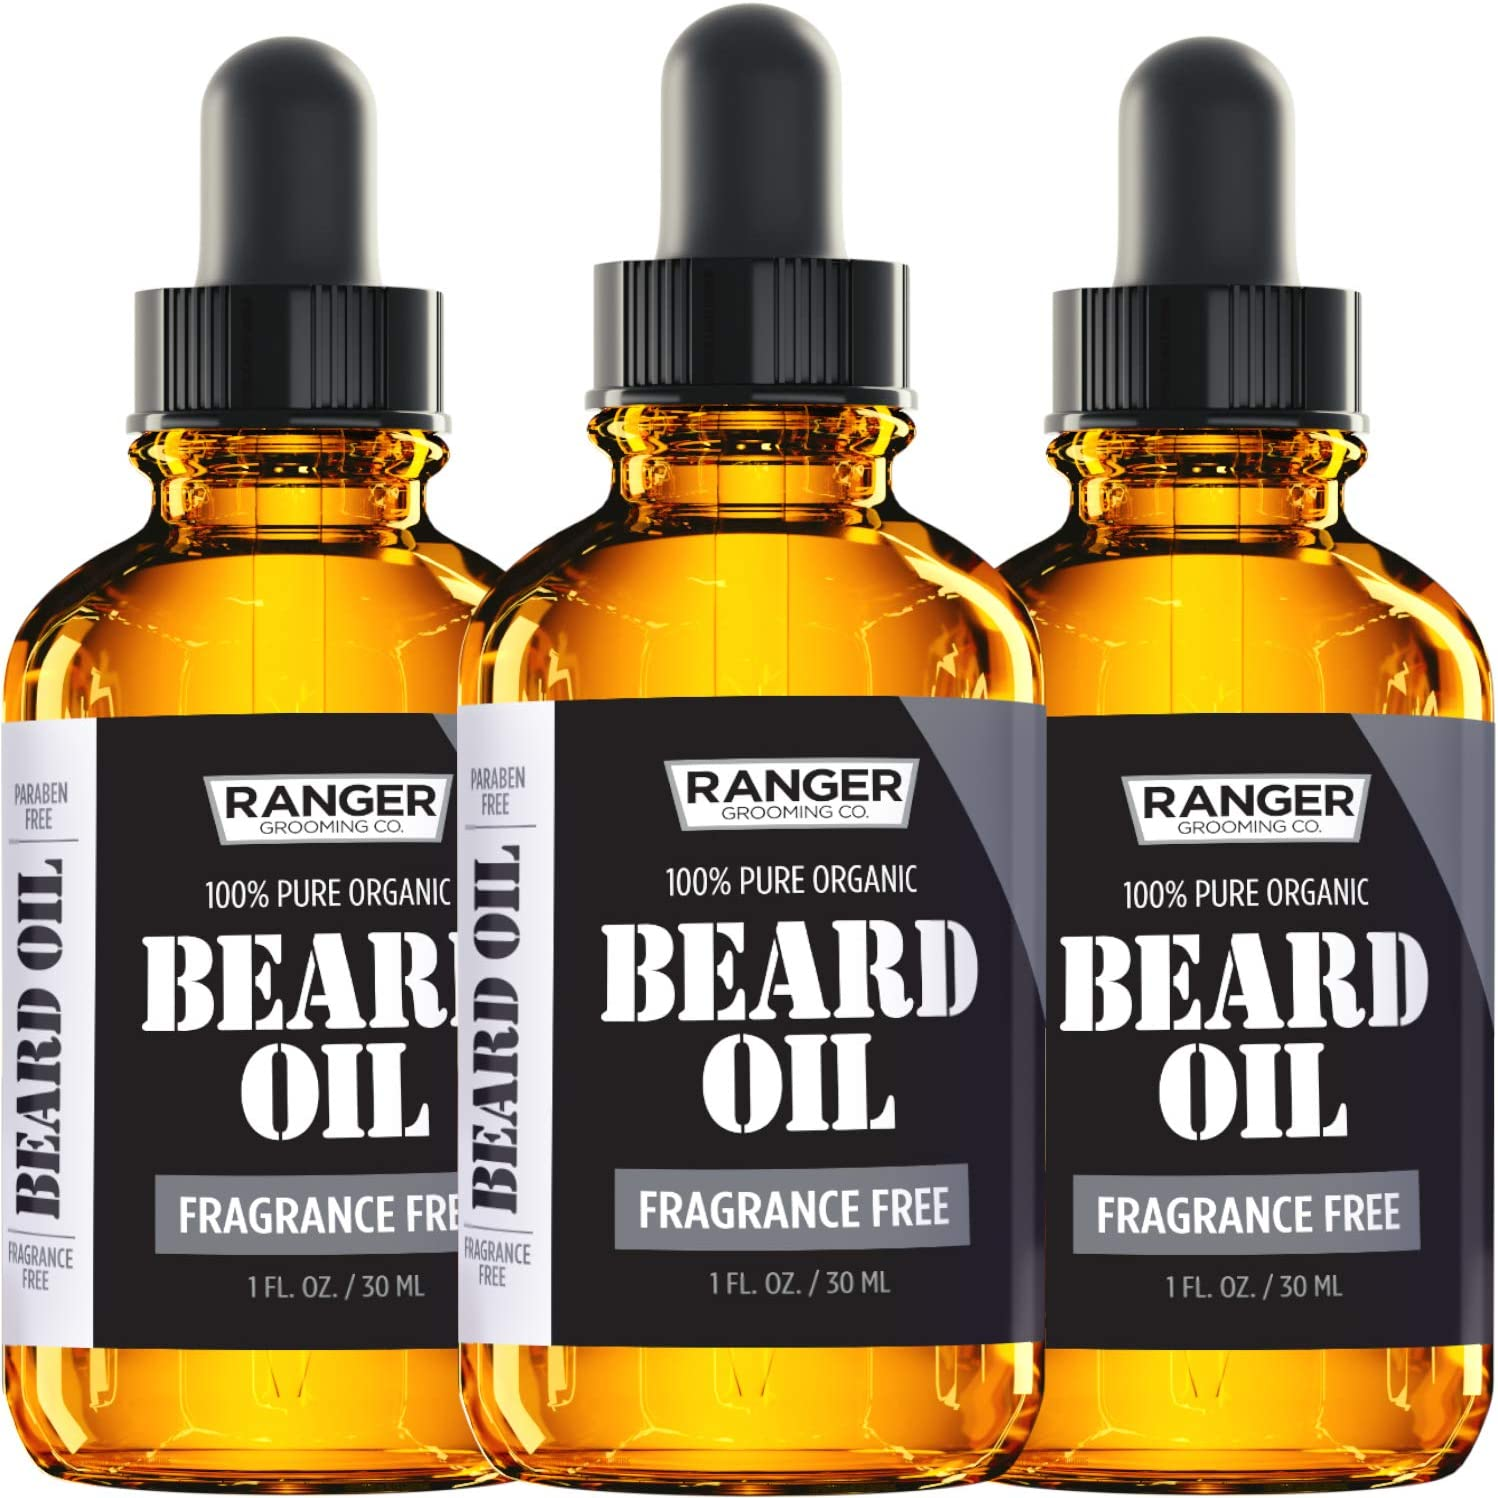 Fragrance-Free Beard Oil & Leave-In Conditioner by Ranger